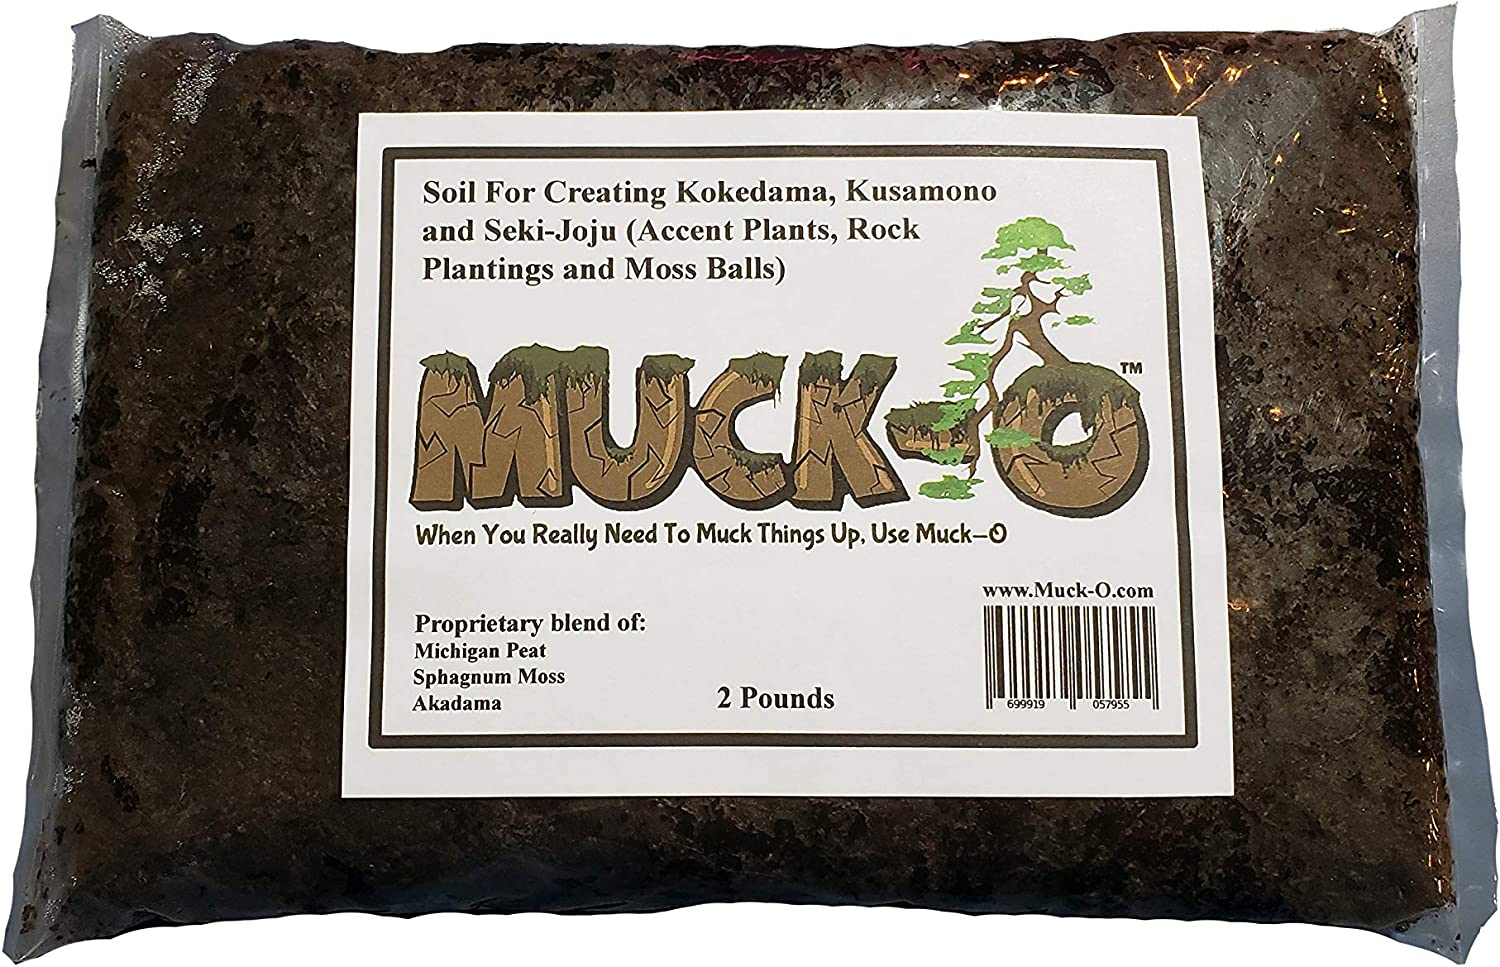 Muck-O New popularity Bonsai All stores are sold Muck Keto Soil for Making S Kusamono and Kokedama